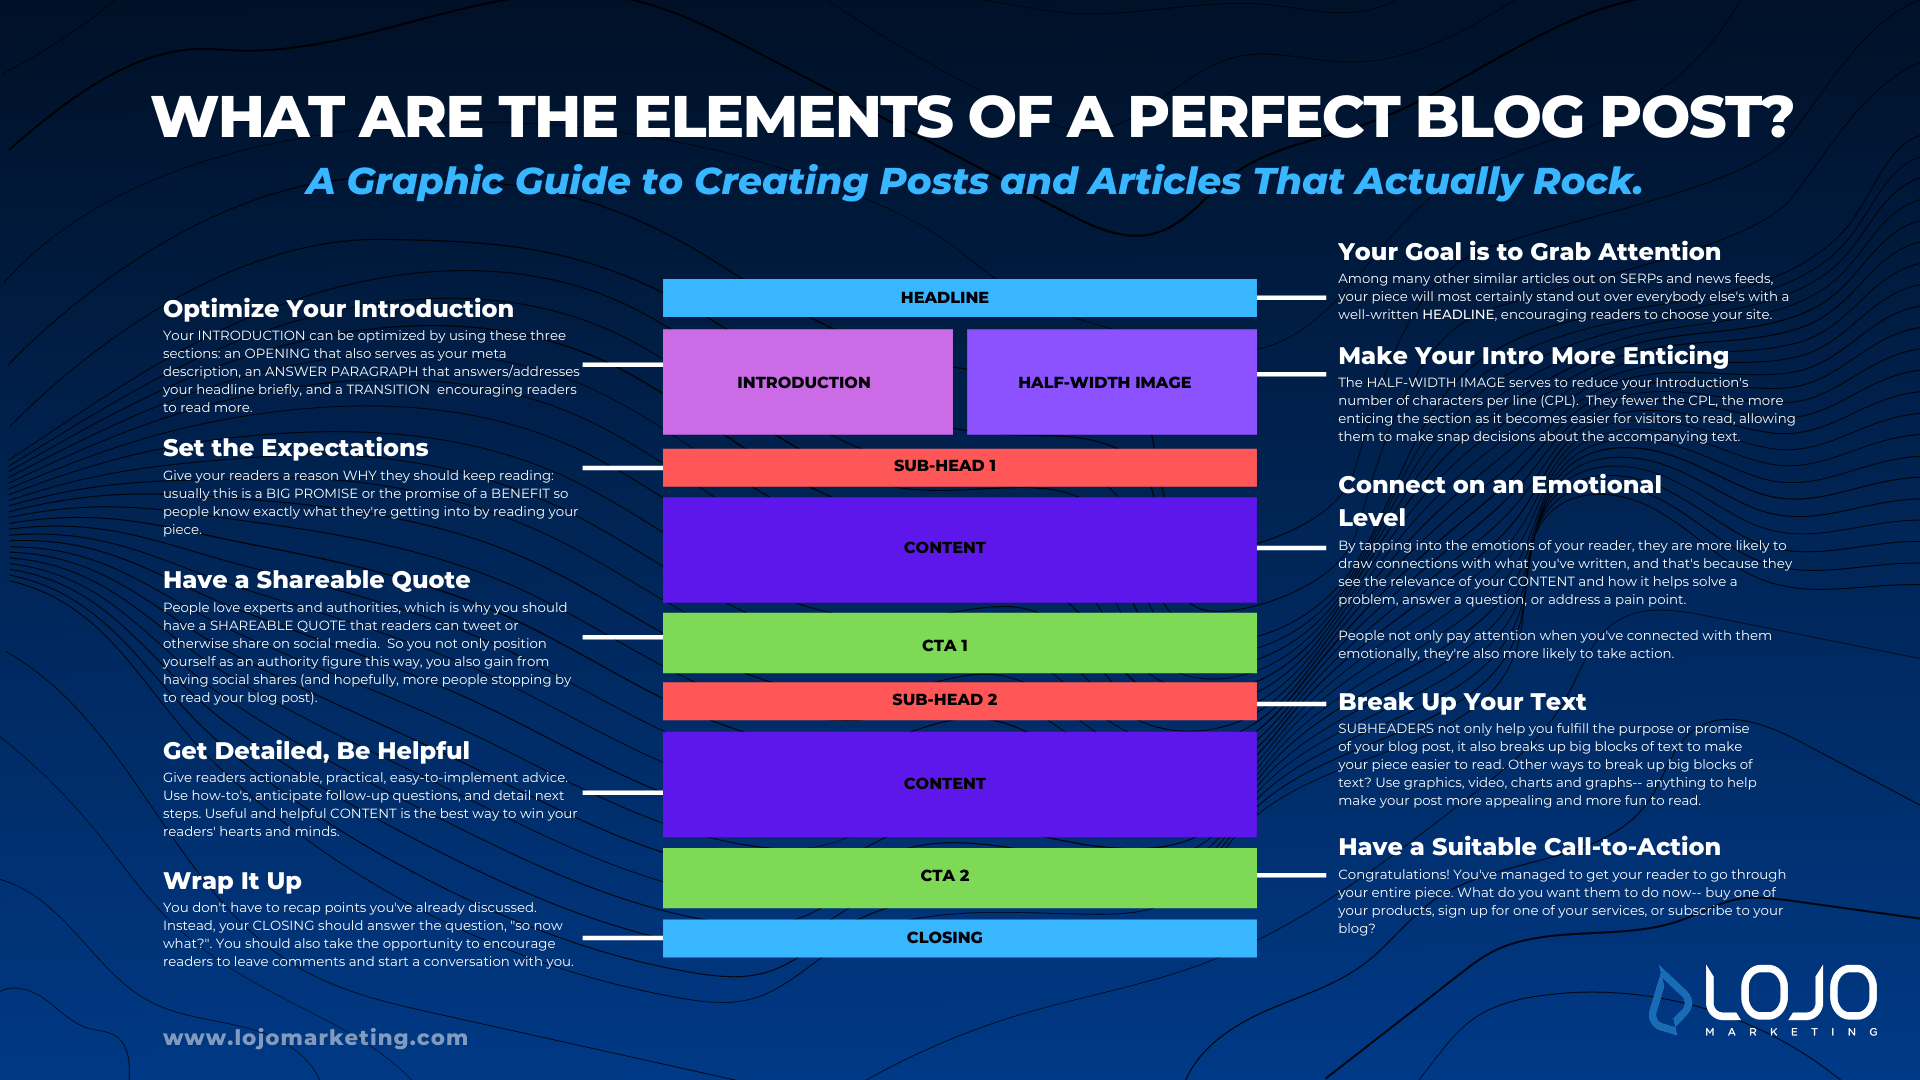 A graphic illustrating the elements of a perfect blog post.